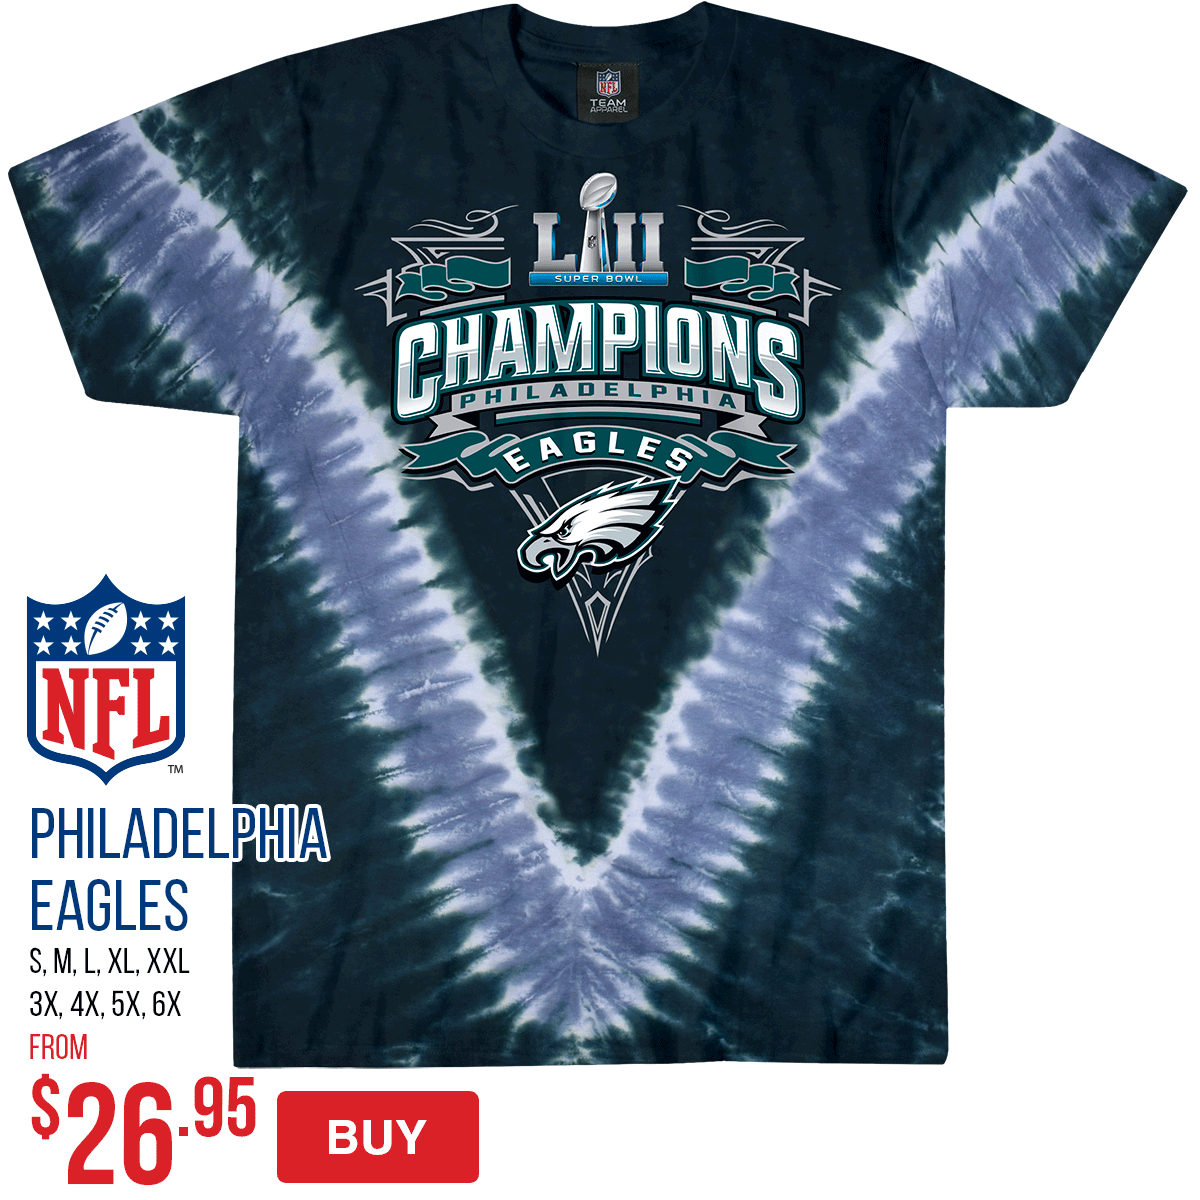 37a57700 Super Bowl LII Philadelphia Eagles Champions Tees! - Liquid Blue ...